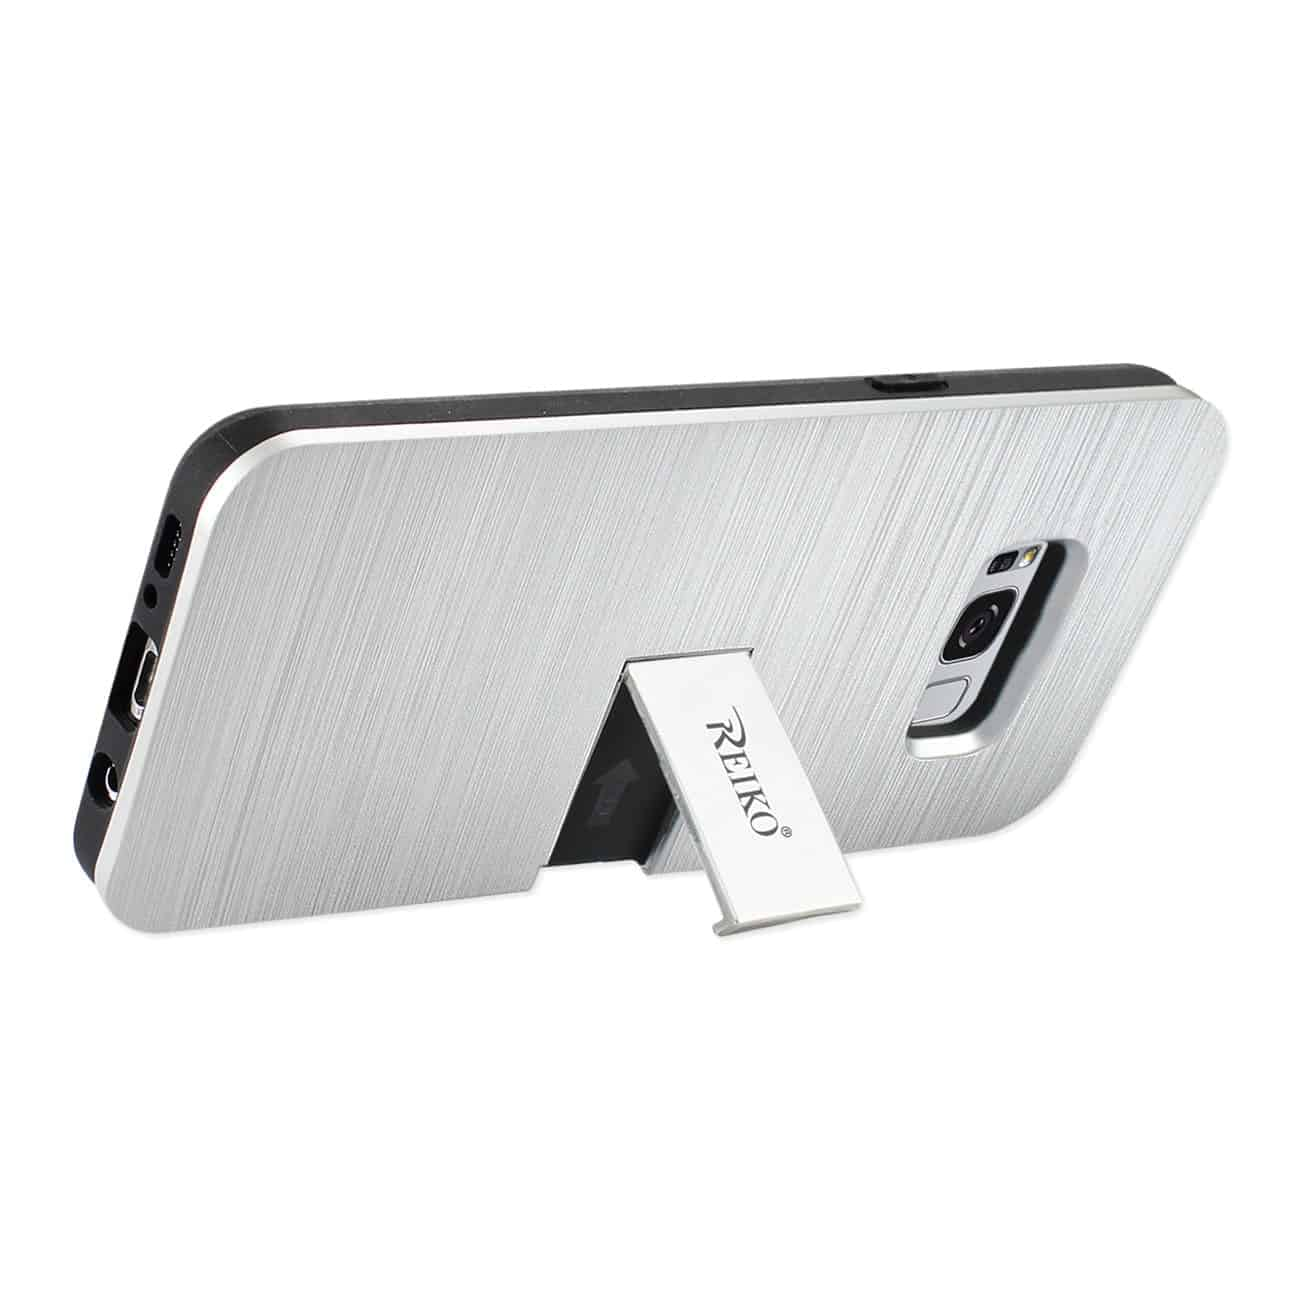 SAMSUNG S8 EDGE/ S8 PLUS SLIM ARMOR HYBRID CASE WITH CARD HOLDER AND KICKSTAND IN SILVER